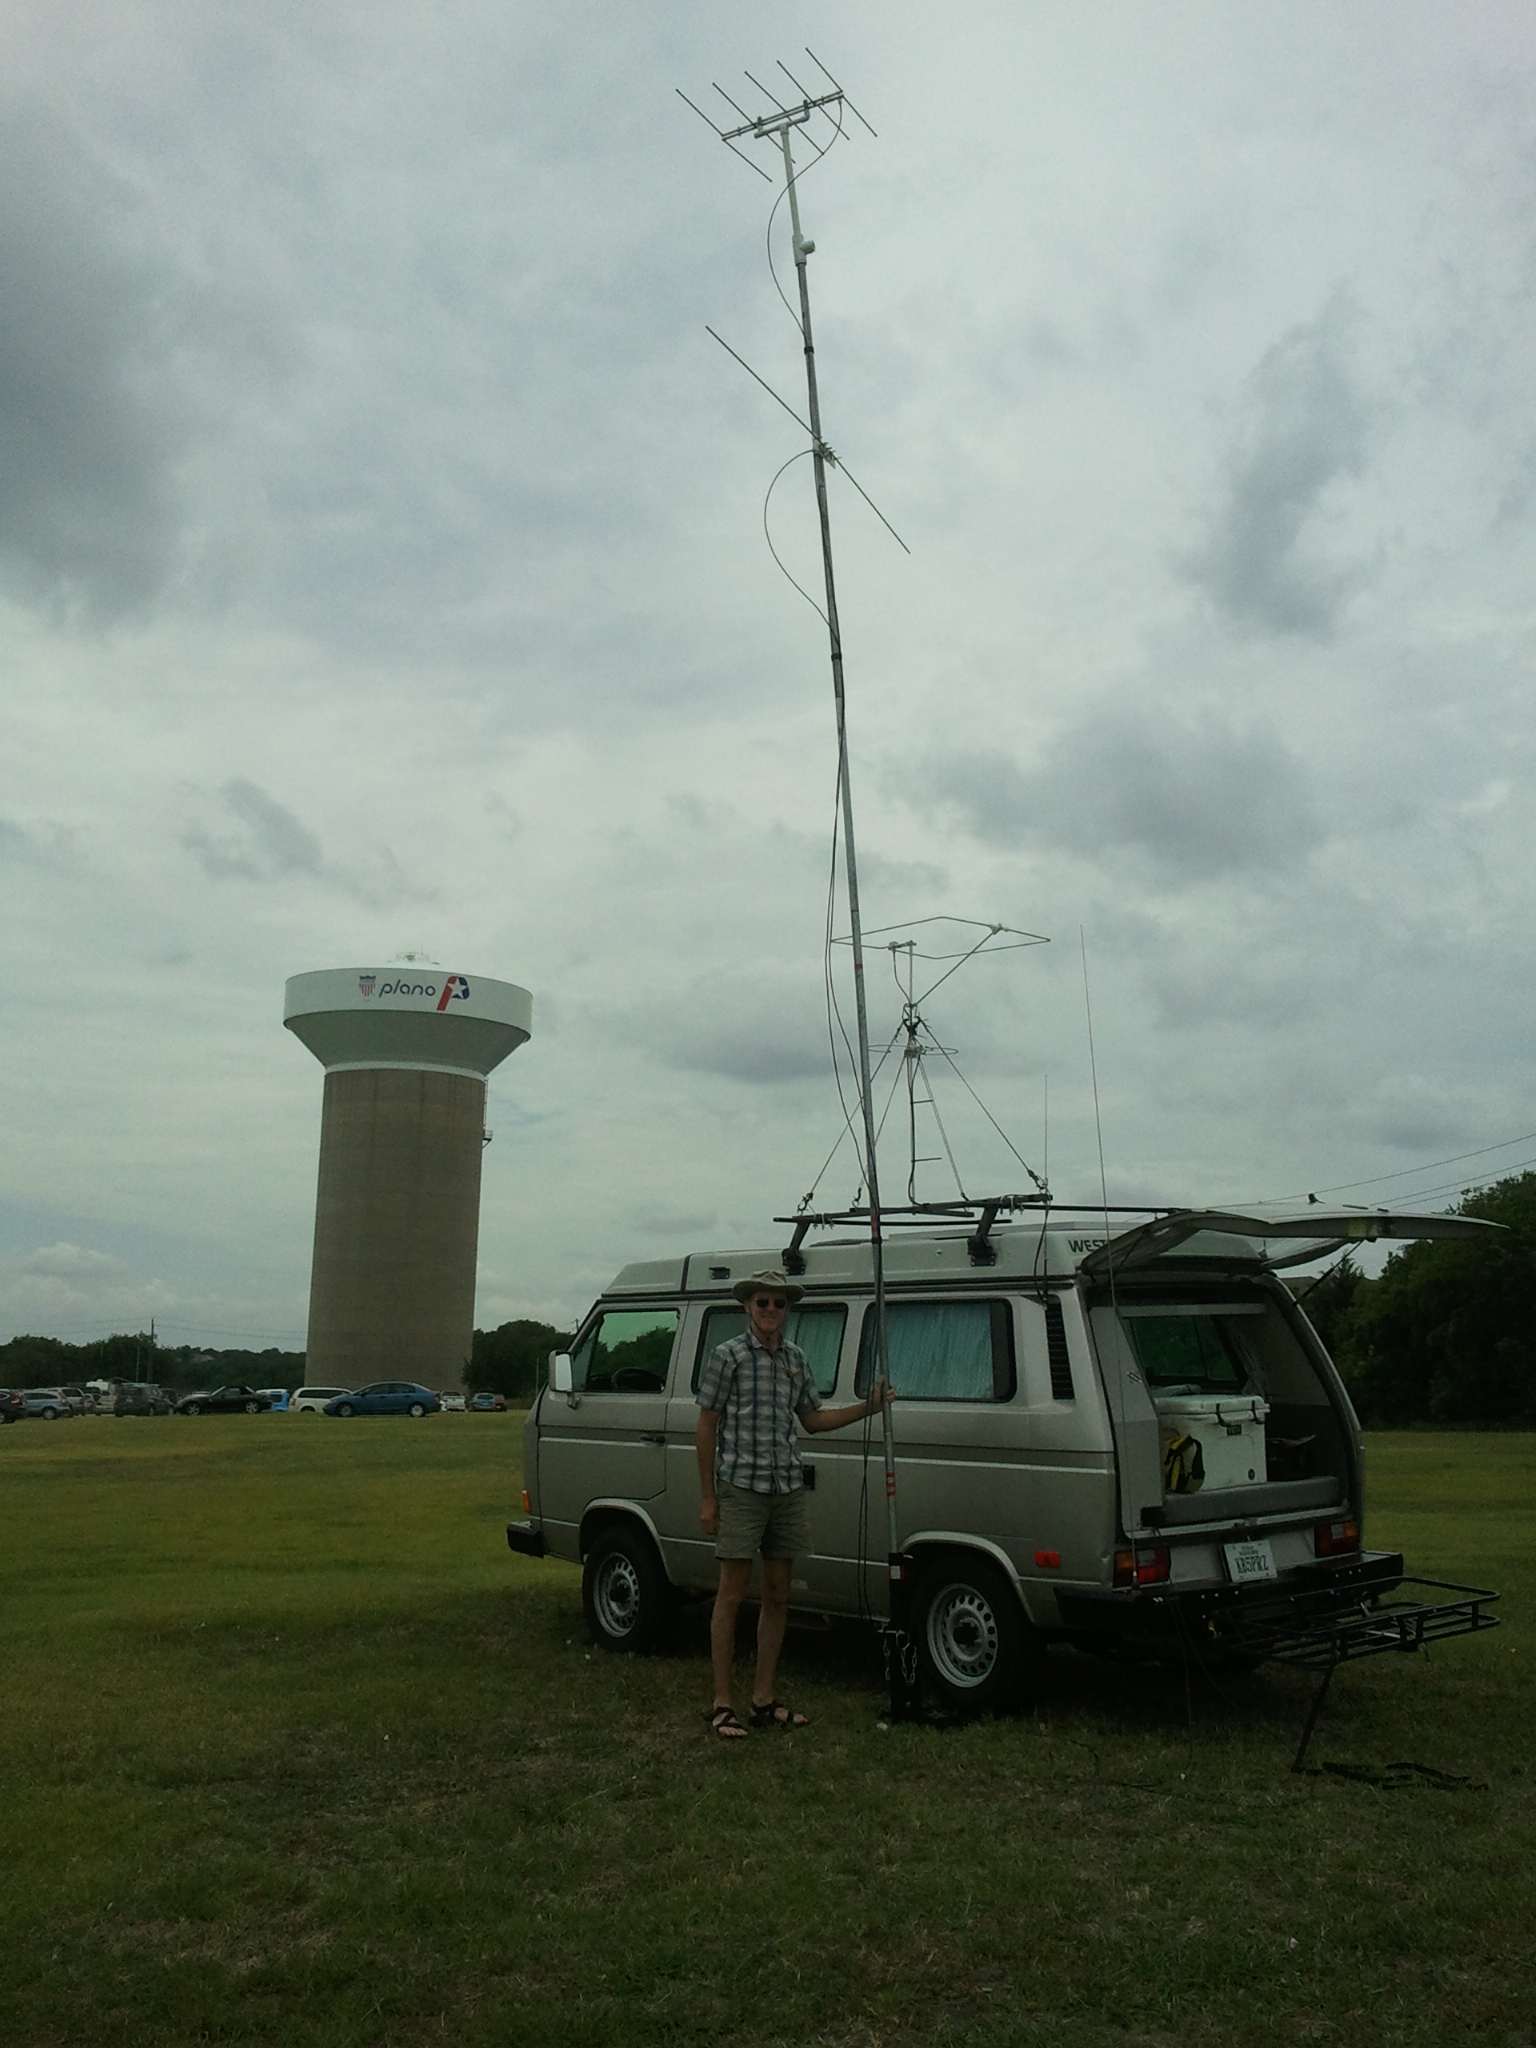 Getting ready for the June 2015 VHF contest